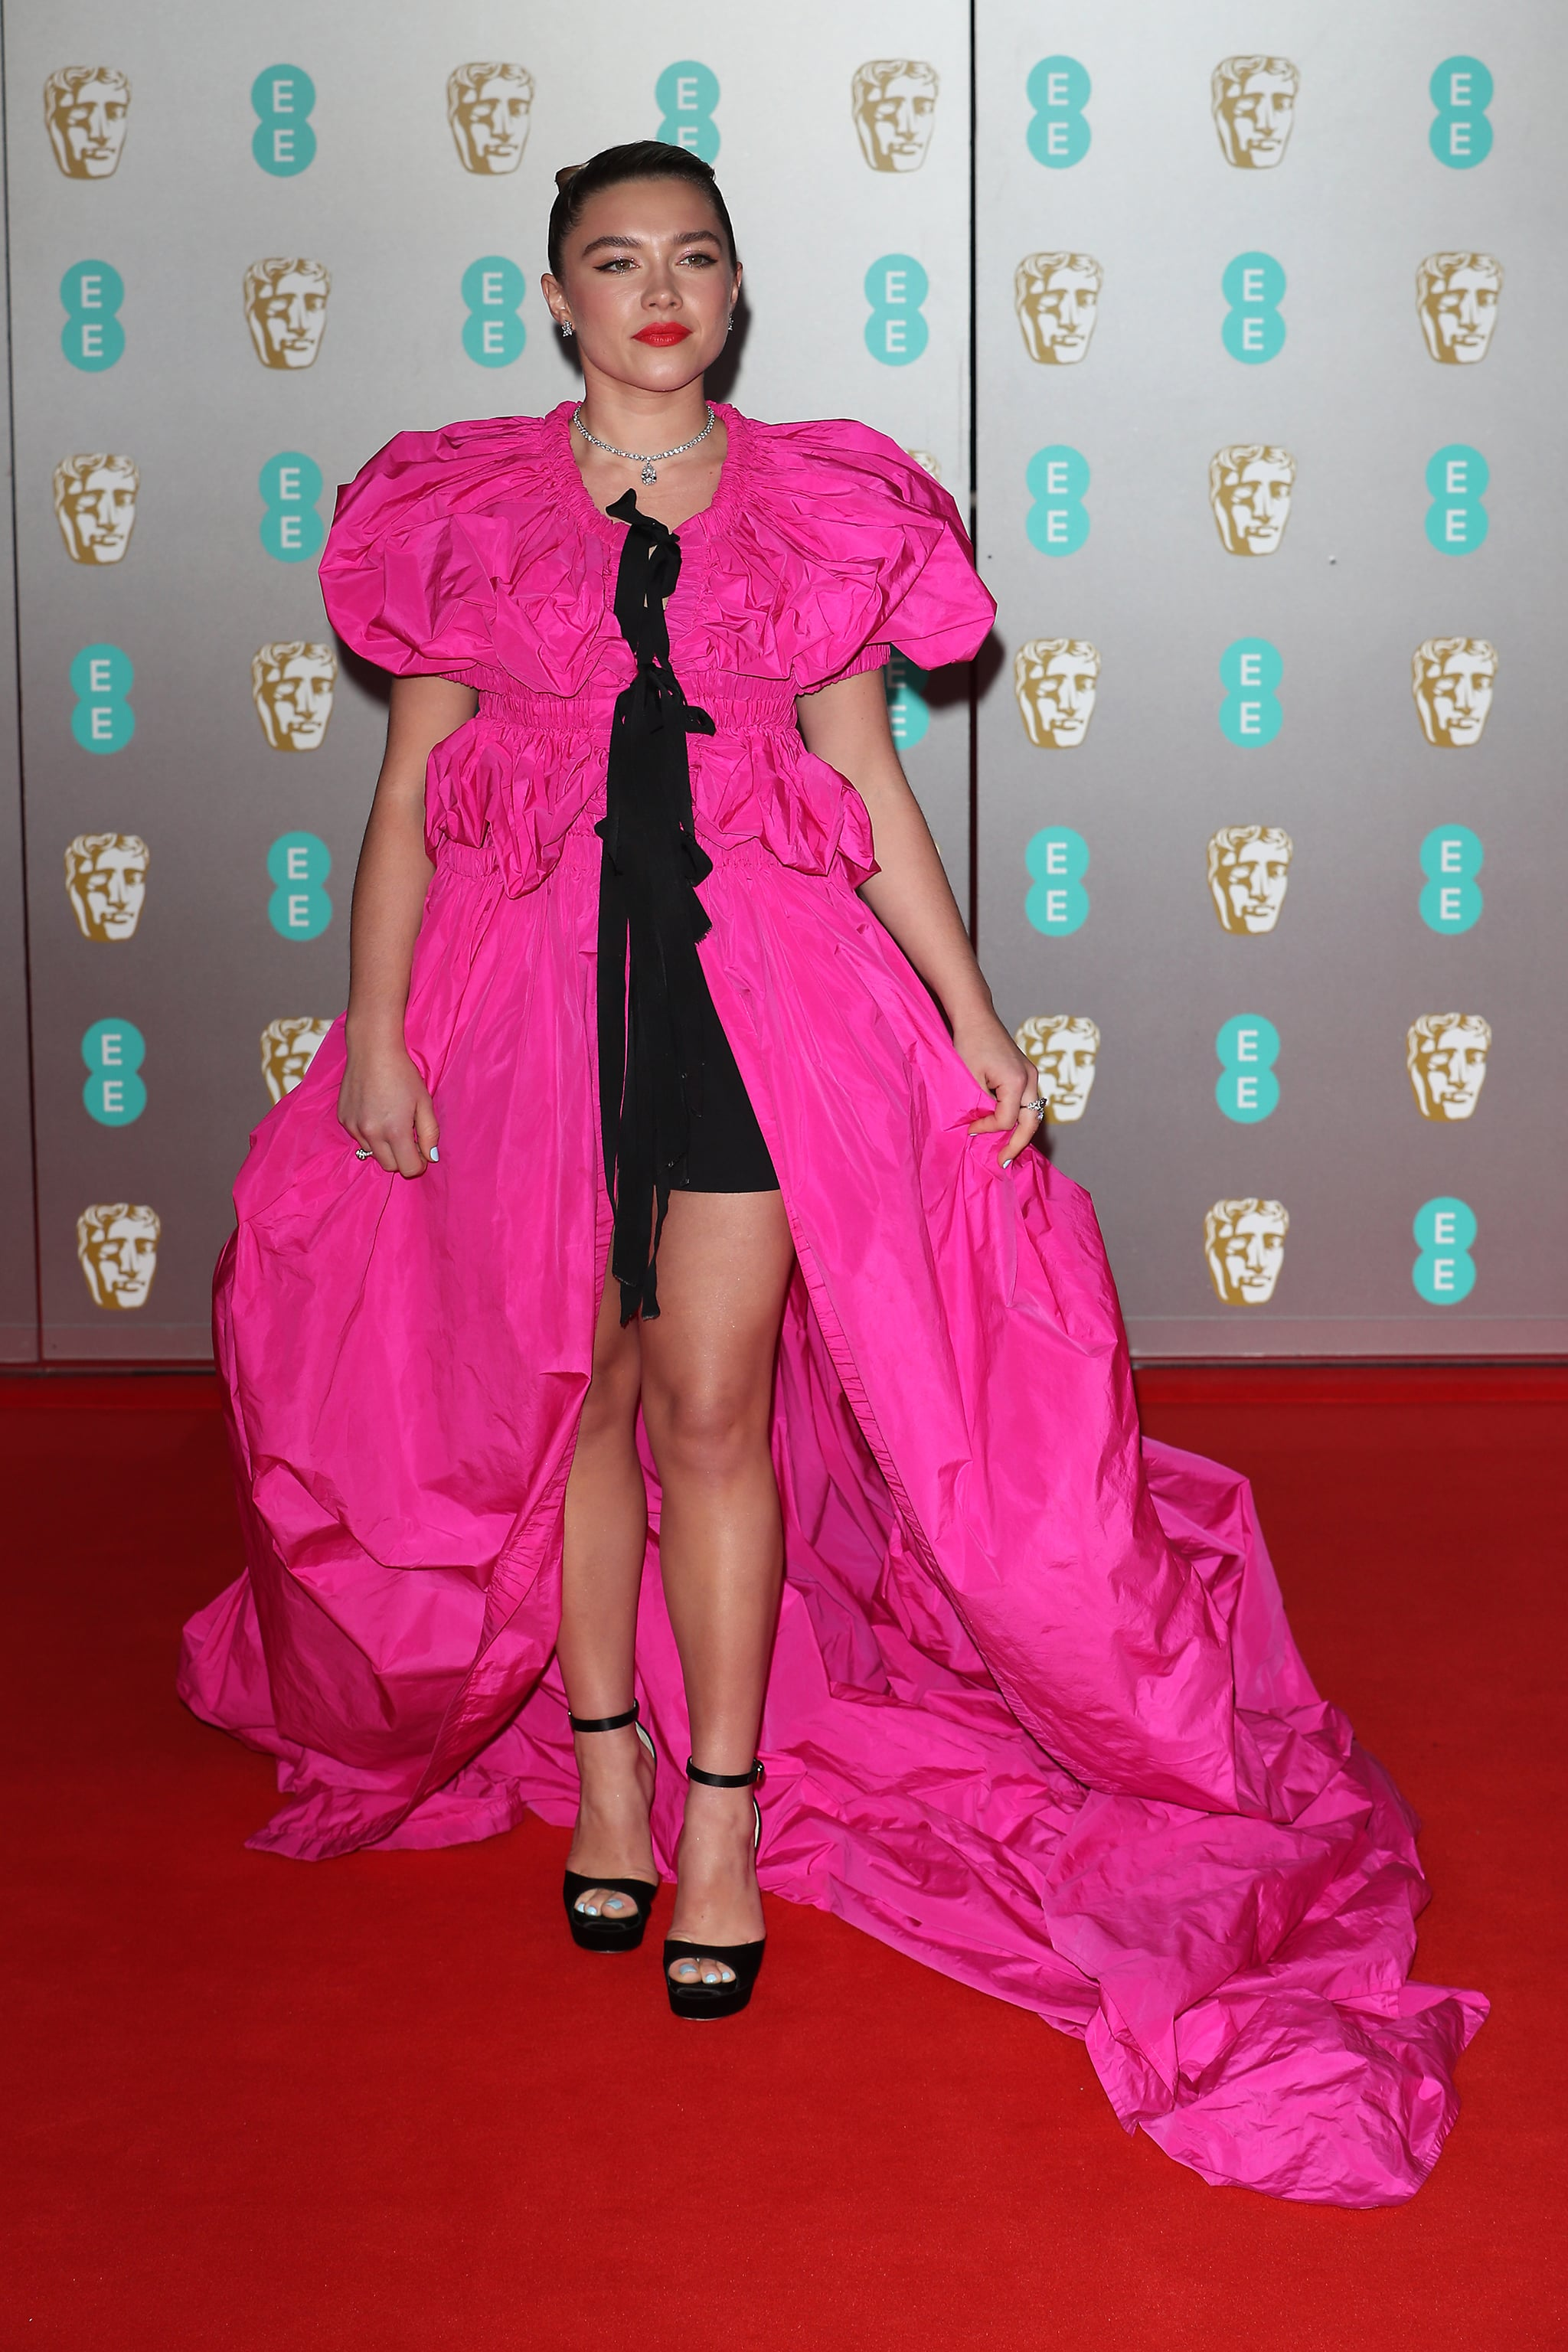 The Best Red Carpet Outfits At The 2020 Baftas Popsugar Fashion